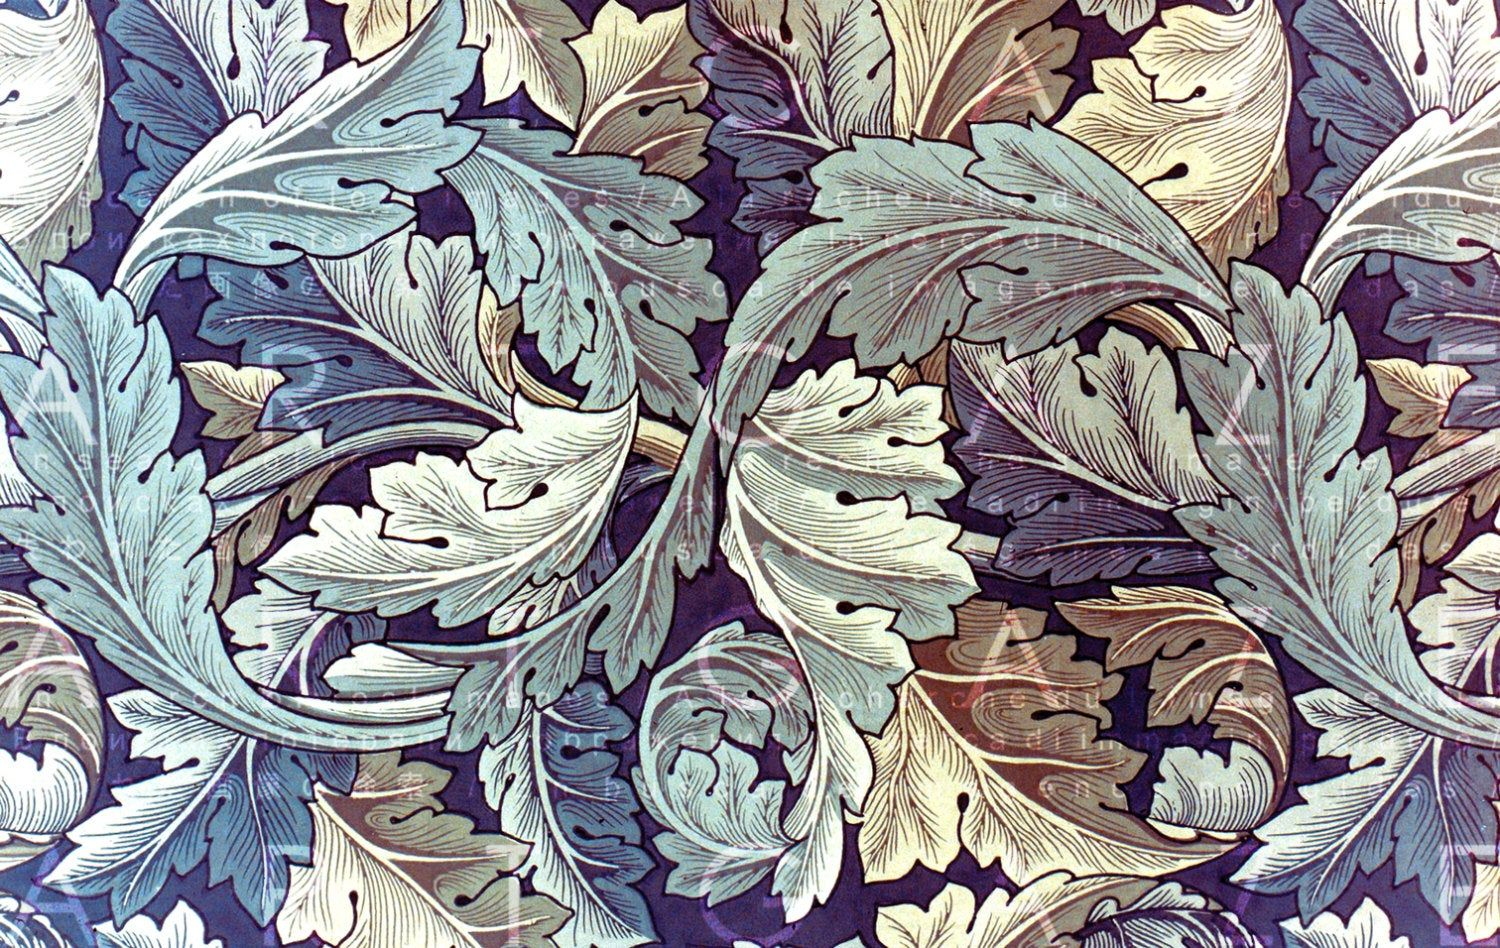 Art Nouveau Acanthus Leaves Illustration William Morris Etsy History Wallpaper Art And Craft Videos Arts And Crafts Movement